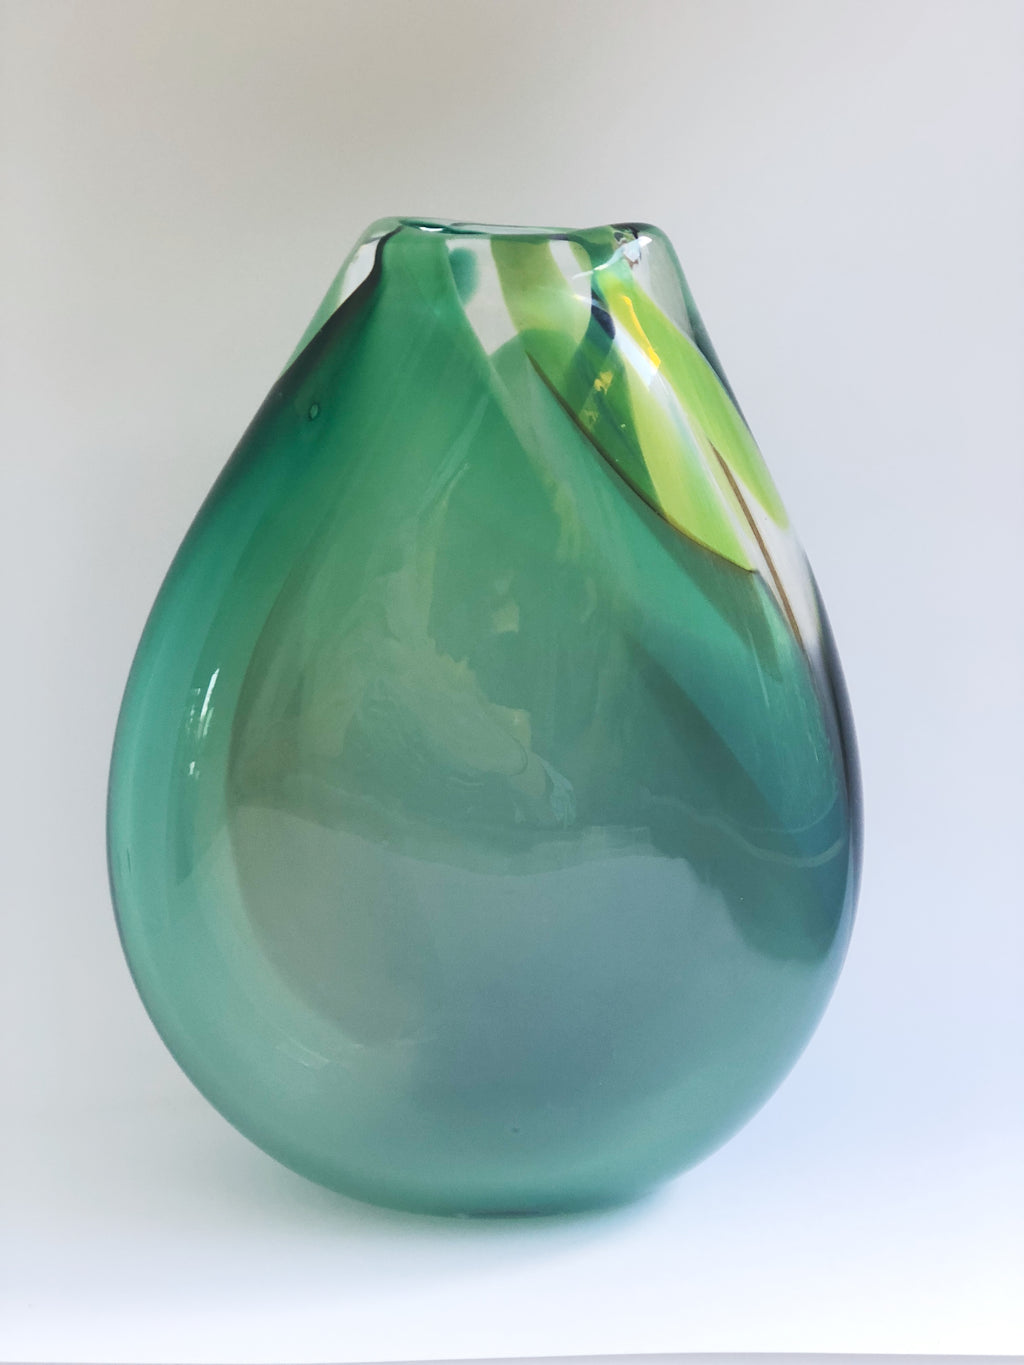 Tear drop vase marbled green mix